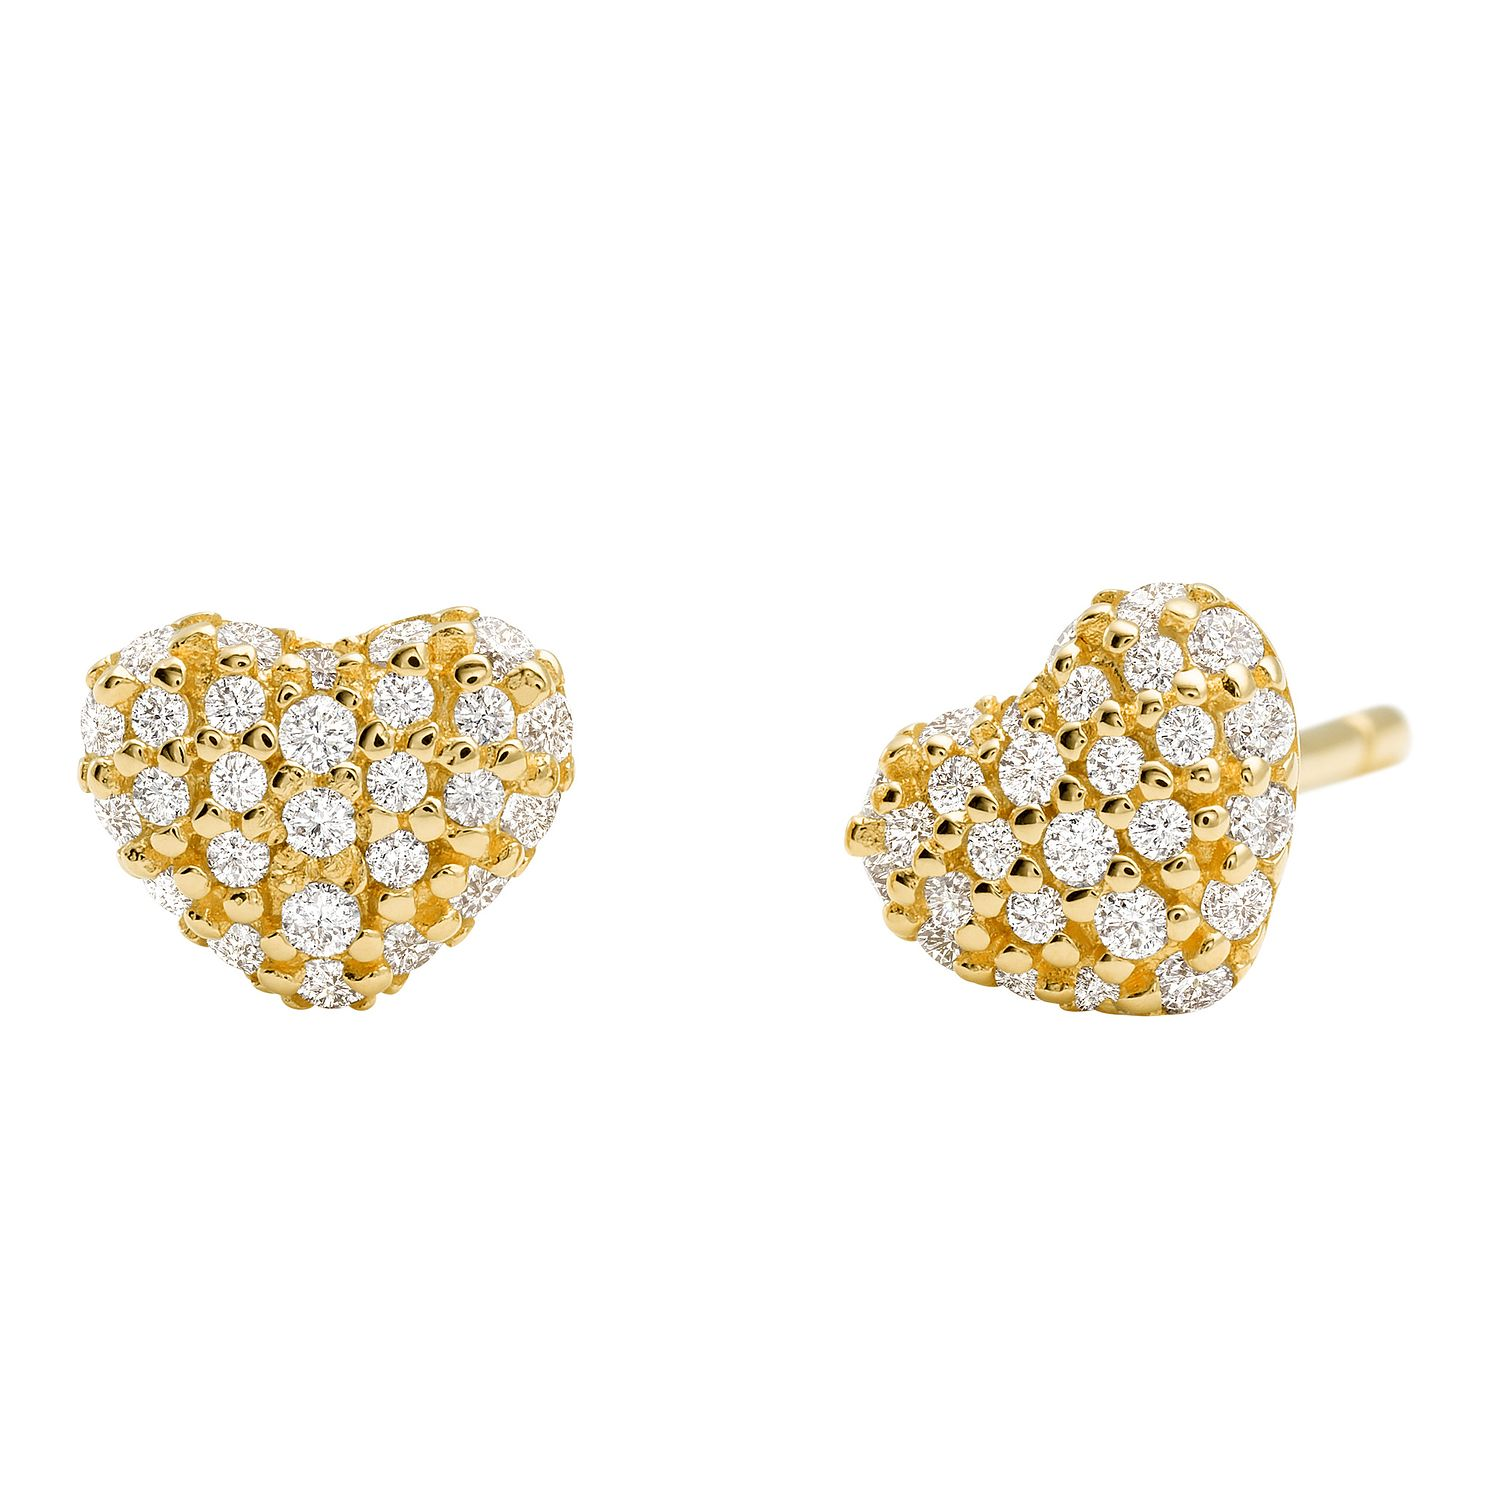 Michael Kors 14ct Yellow Gold Plated Silver Stud Earrings - Product number 9801766